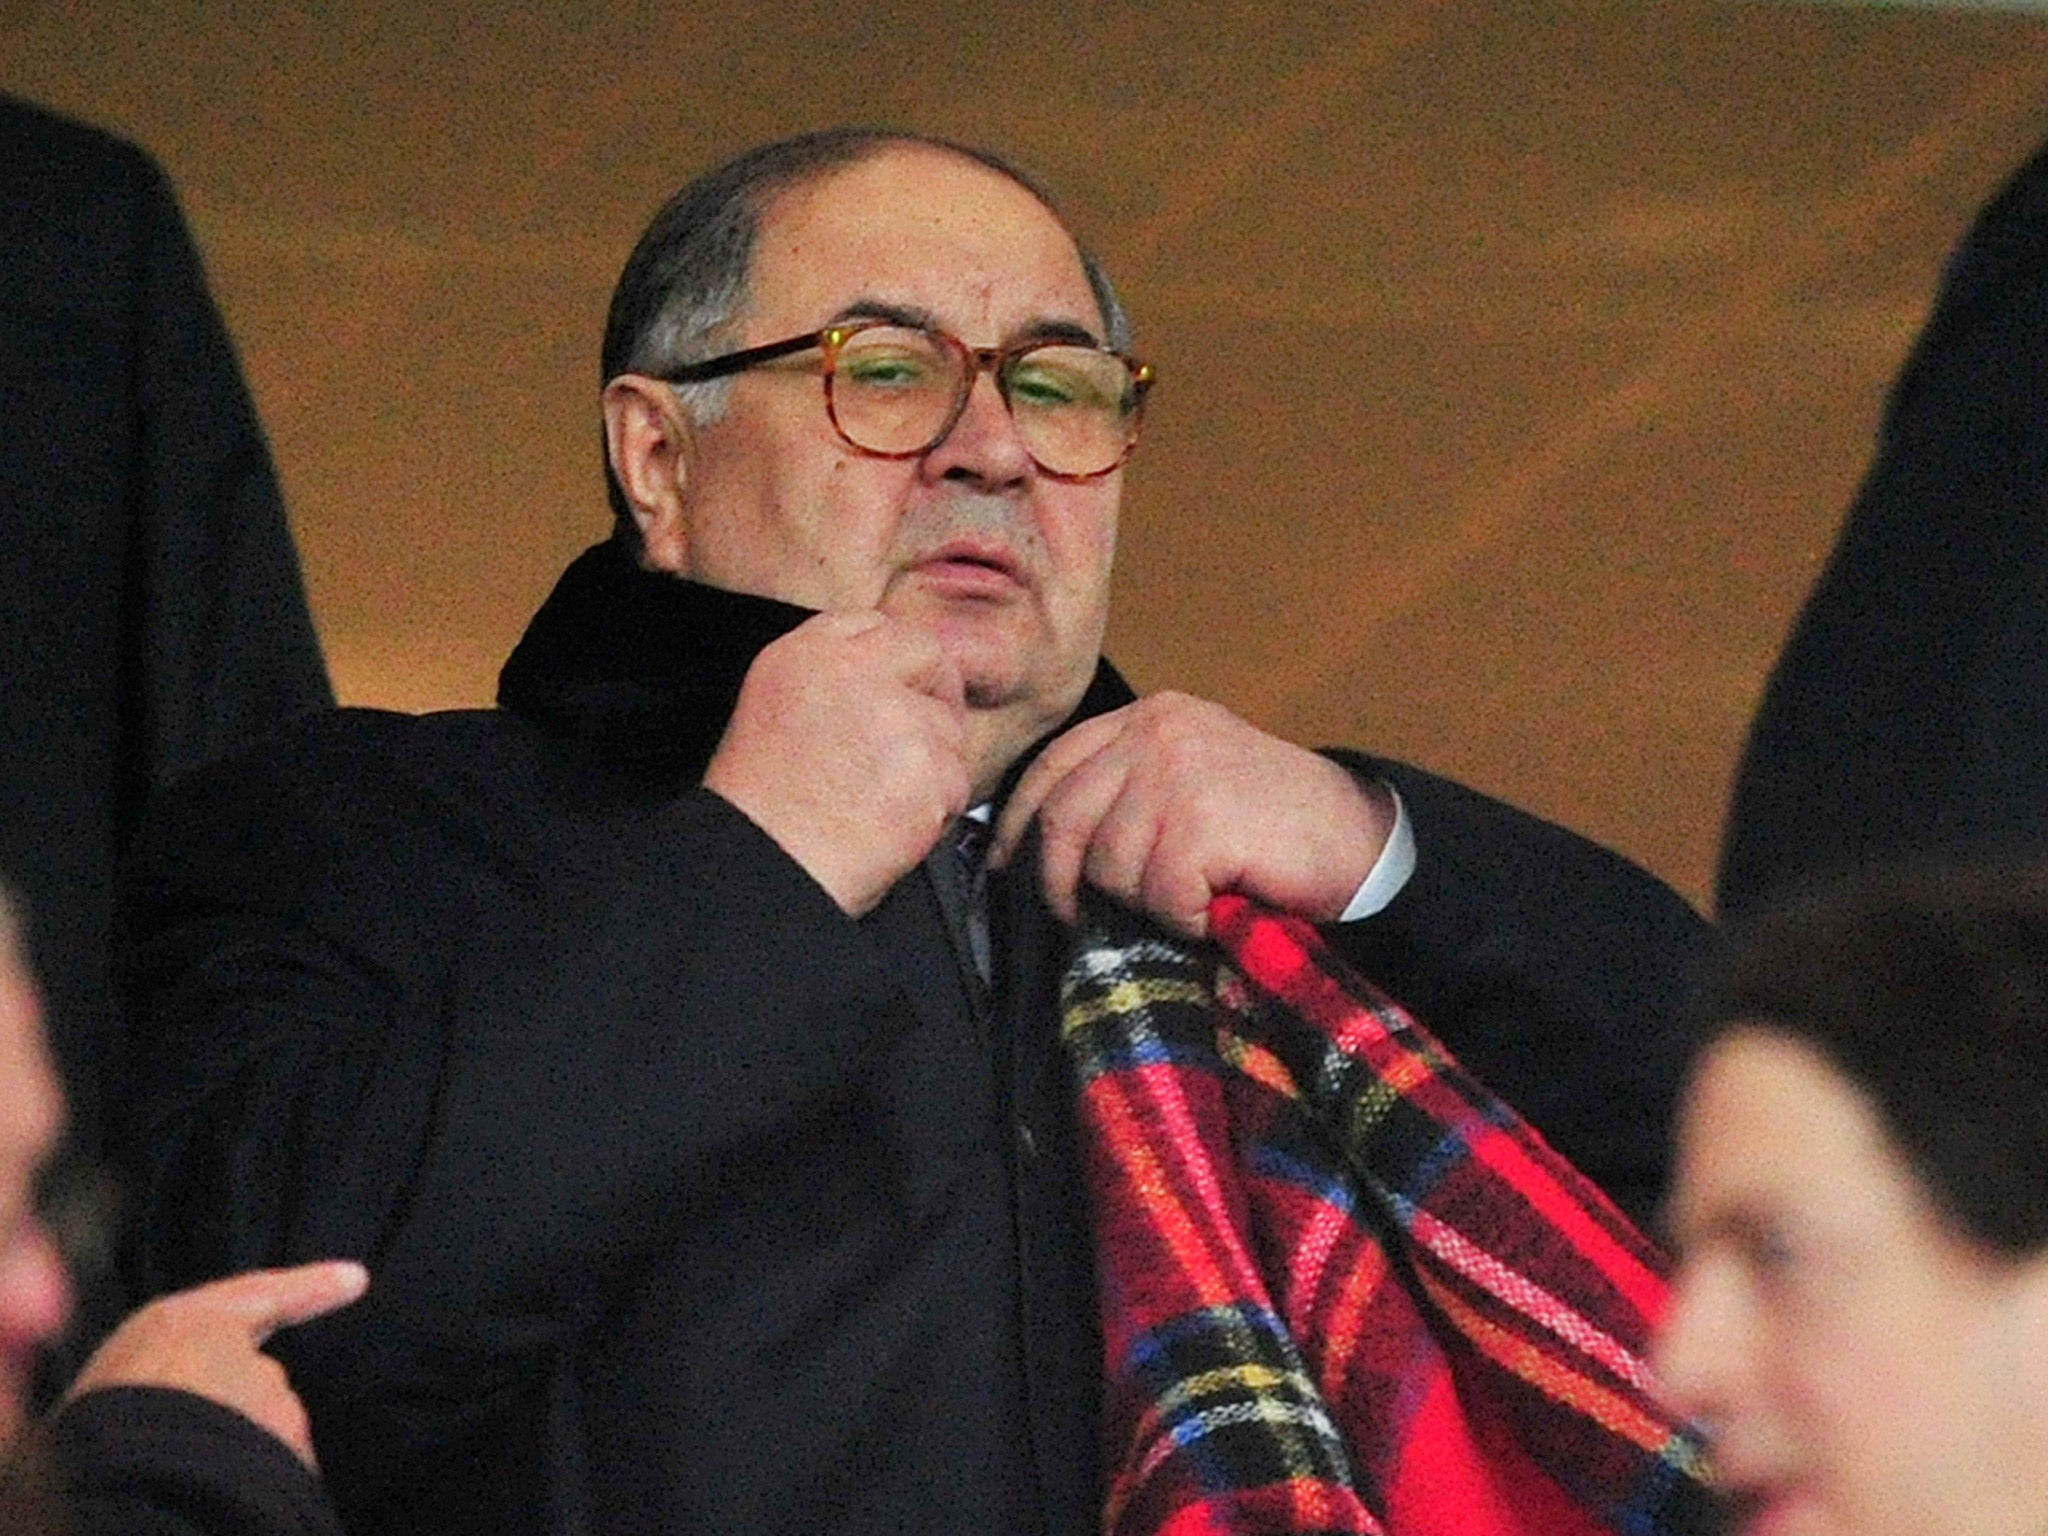 Alisher Usmanov to make second Arsenal takeover bid after having £1bn offer rejected by Stan Kroenke